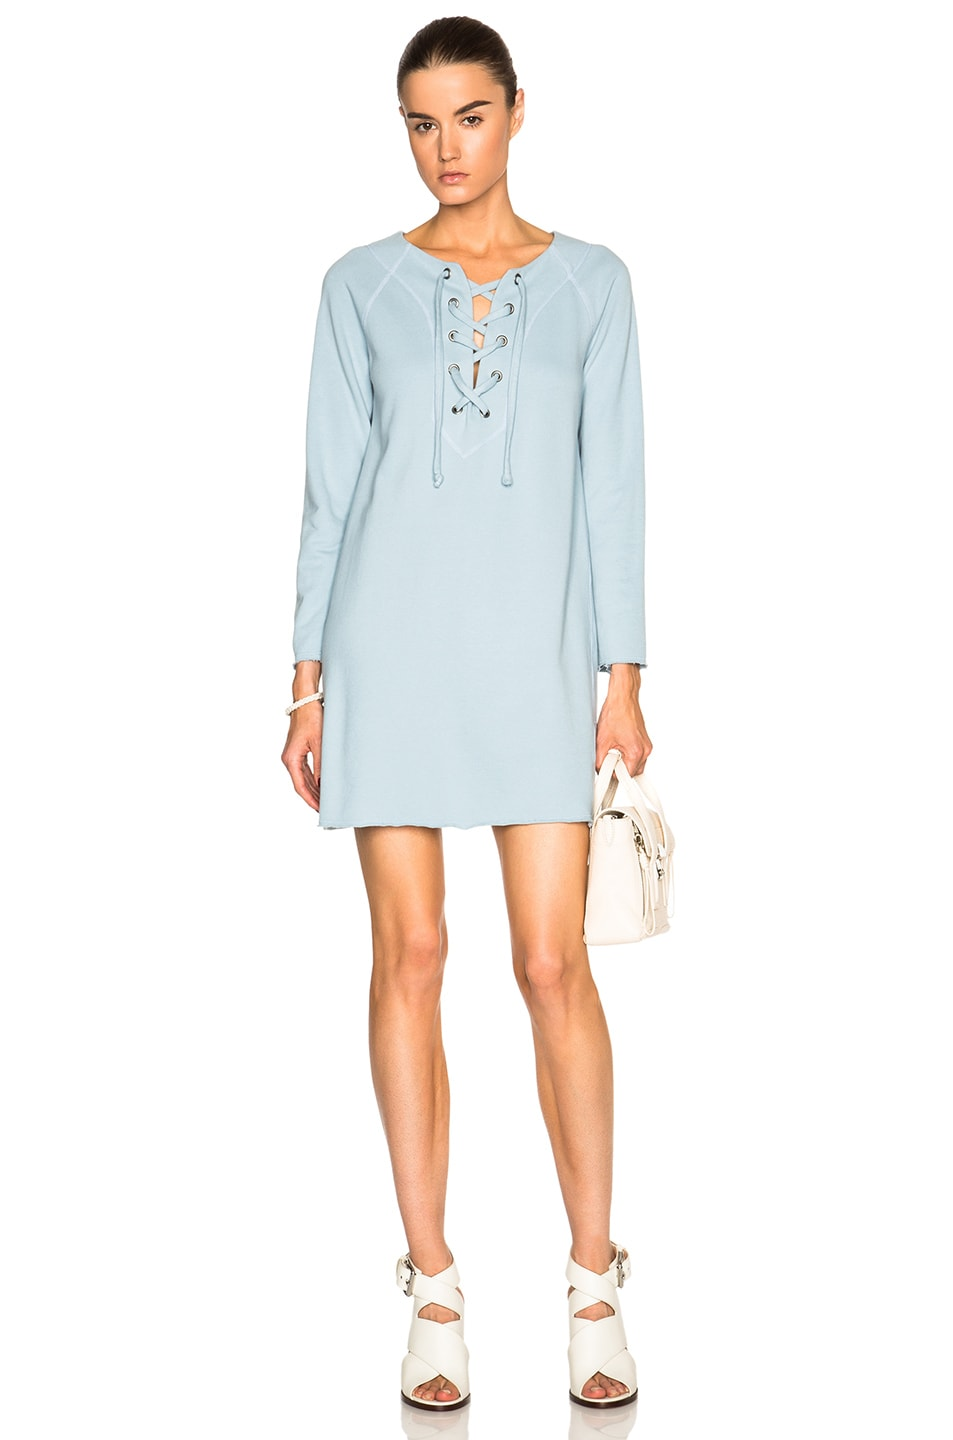 Image 1 of Raquel Allegra Lace Front Dress in Dusty Blue